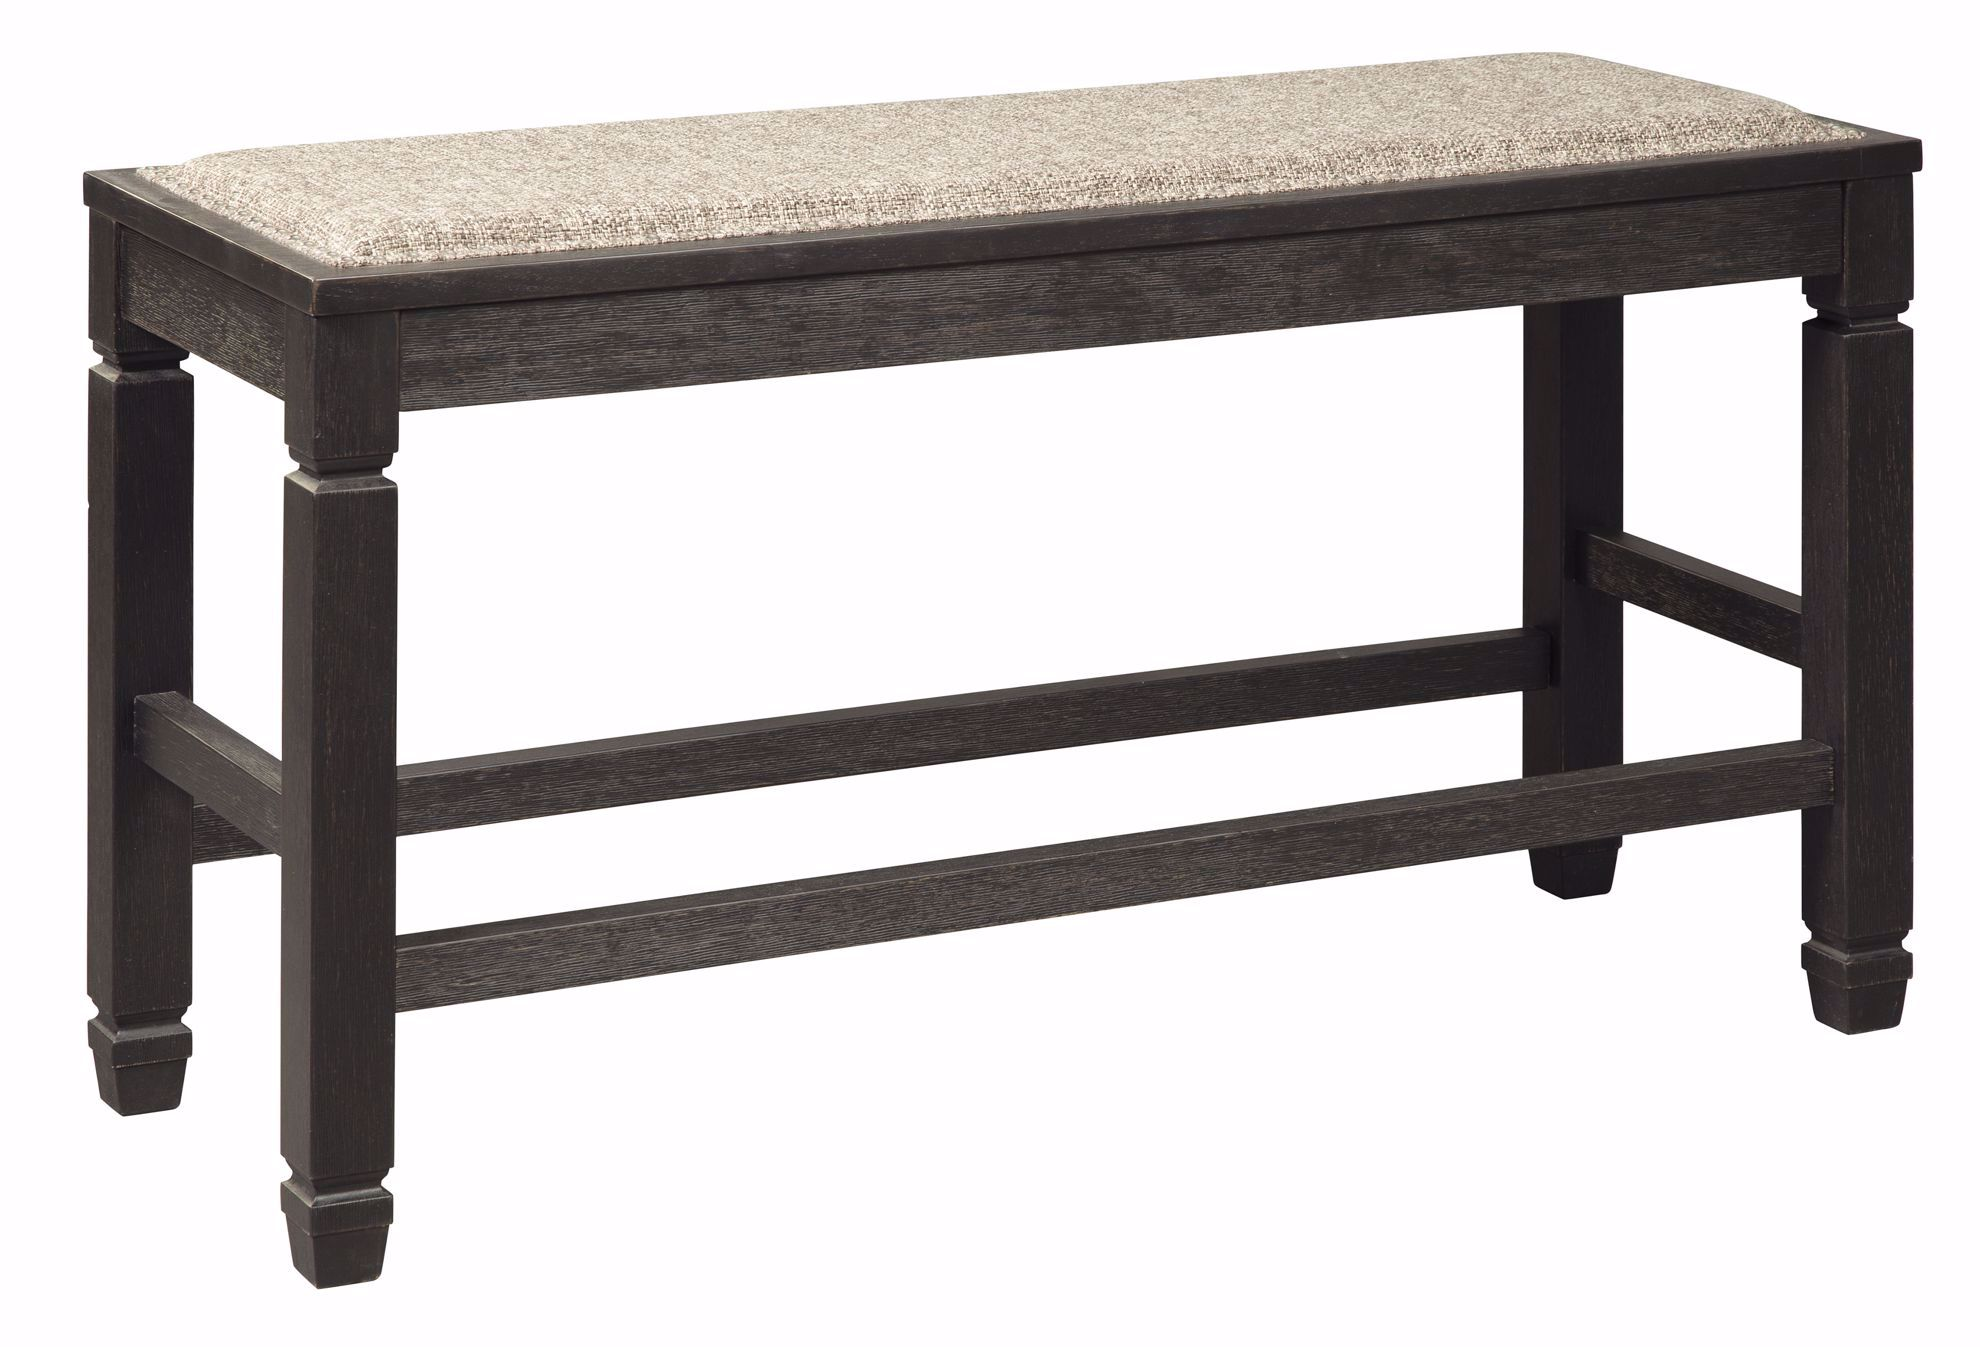 Picture of Tyler Creek Backless Upholstered Counter Bench